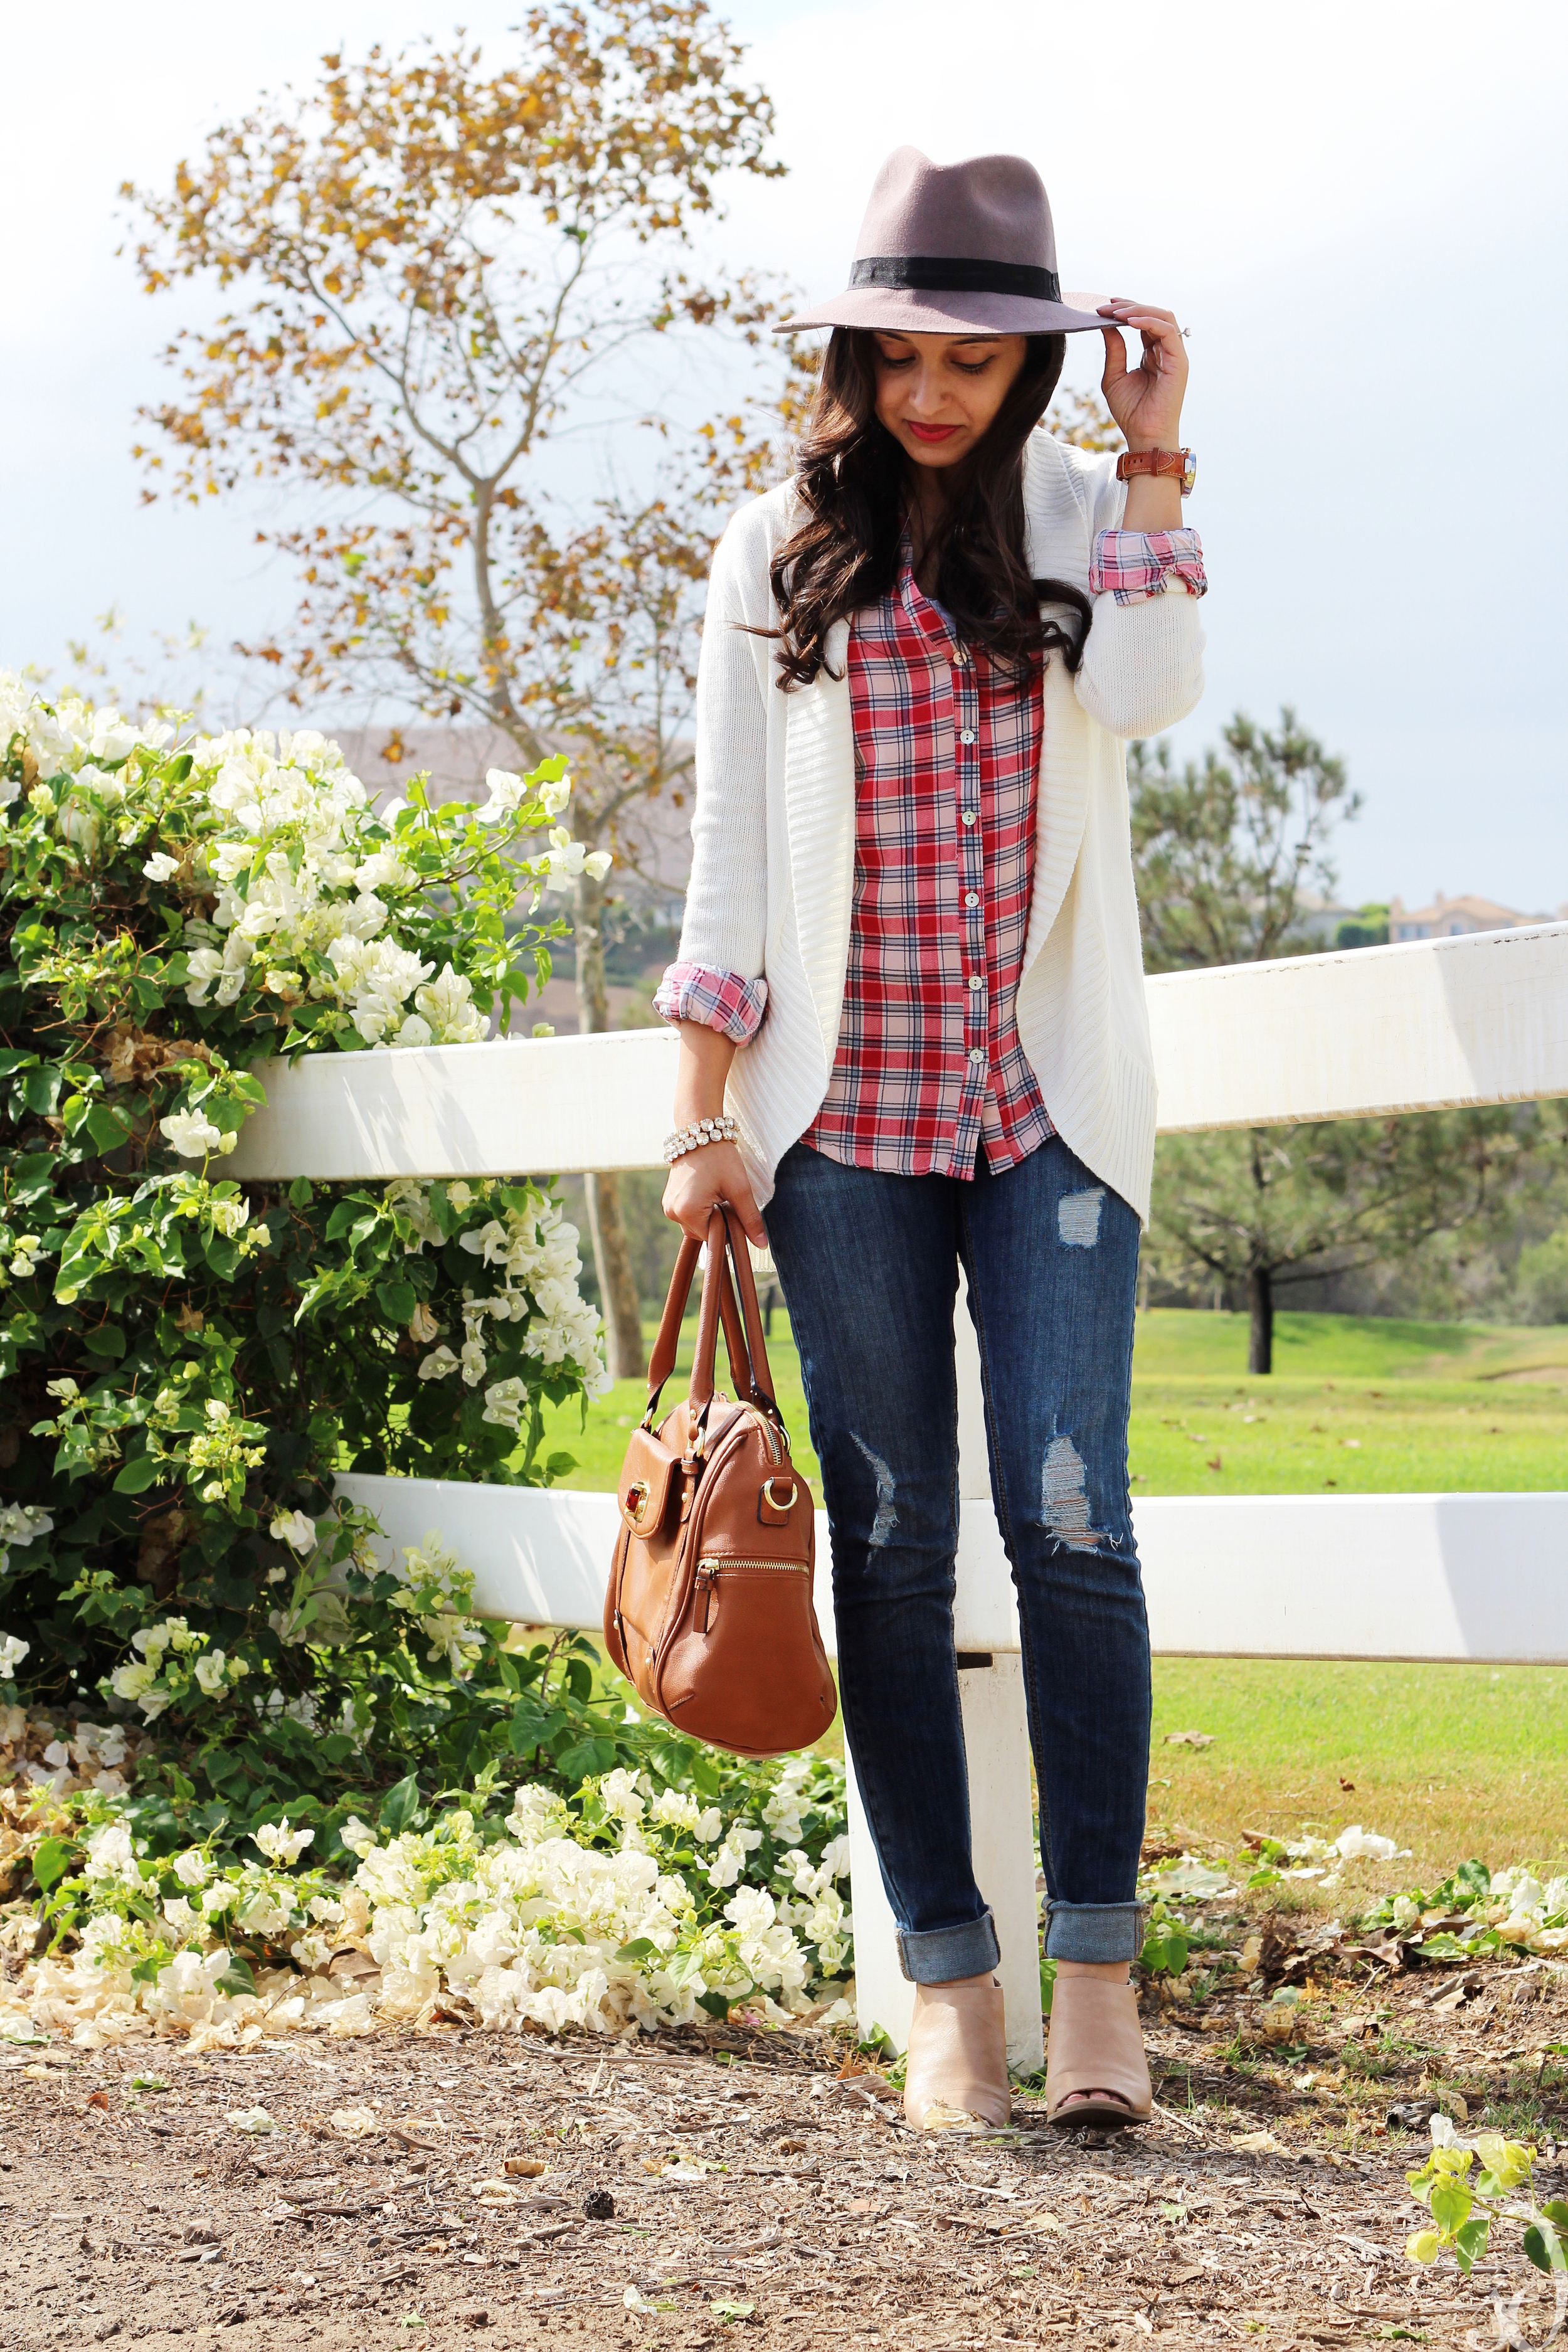 Fall Fashion with plaid, booties, and felt hats